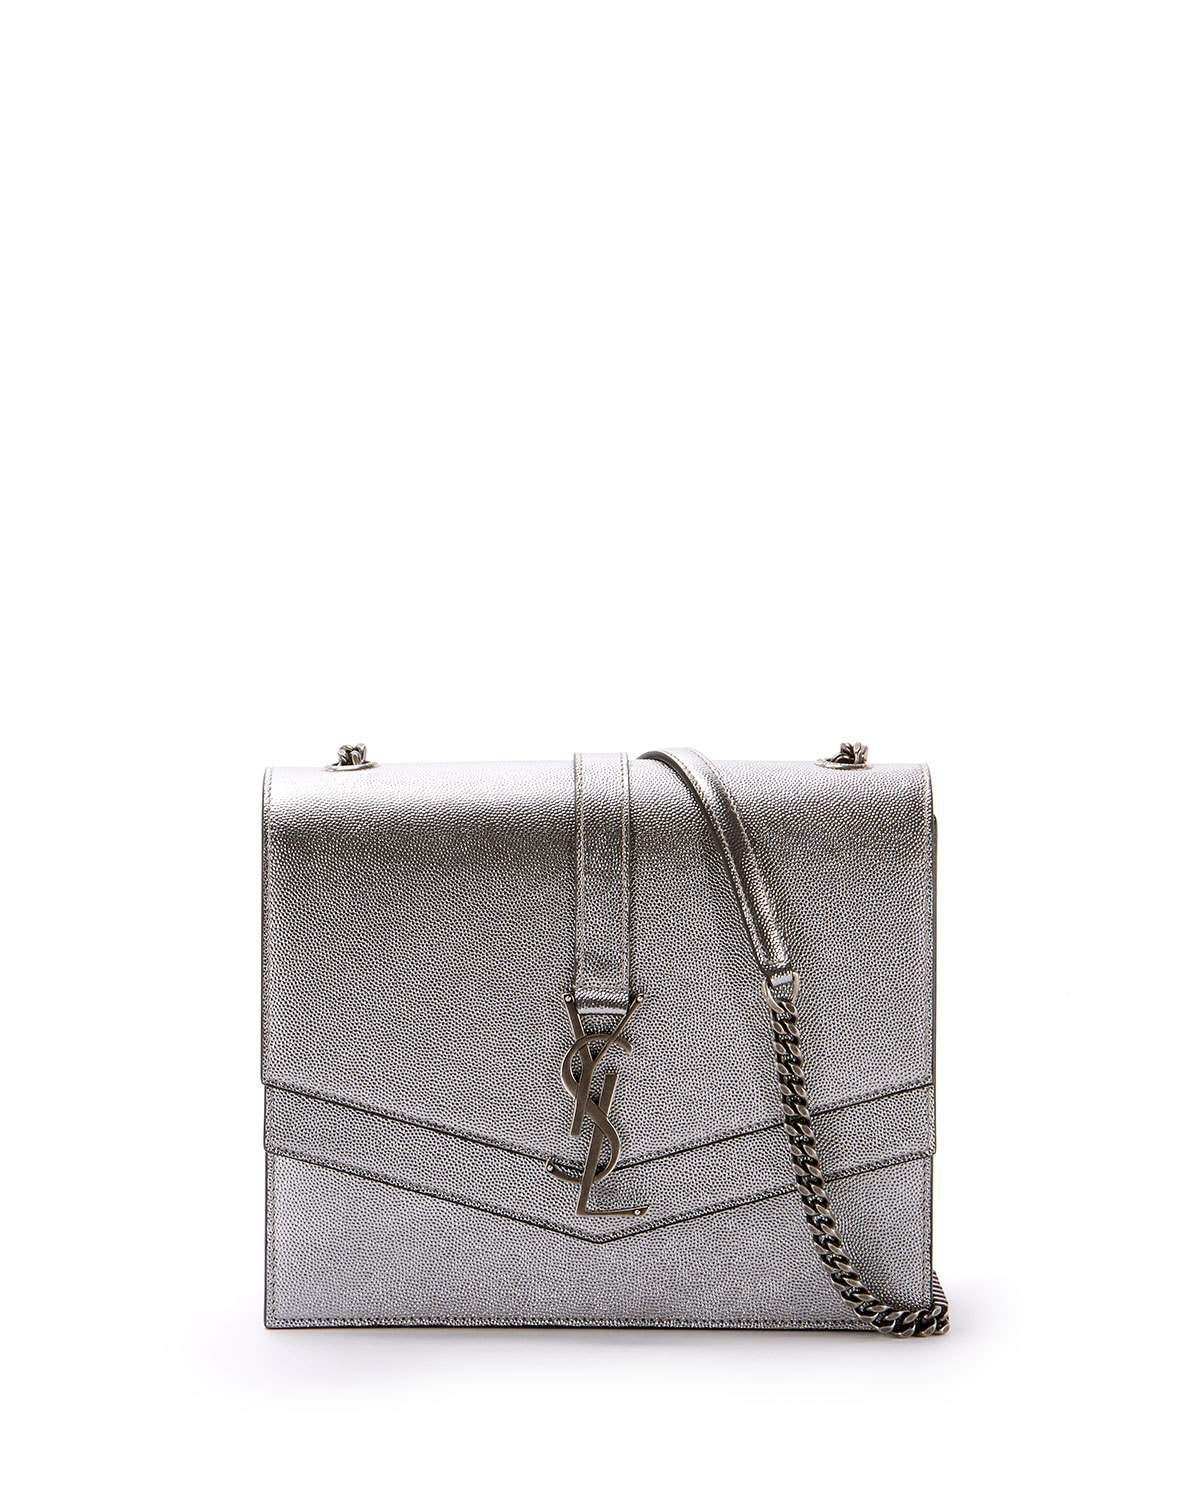 d378a1d5648 Saint Laurent Sulpice Medium Ysl Monogram Triple V-Flap Metallic Leather  Crossbody Bag In Silver